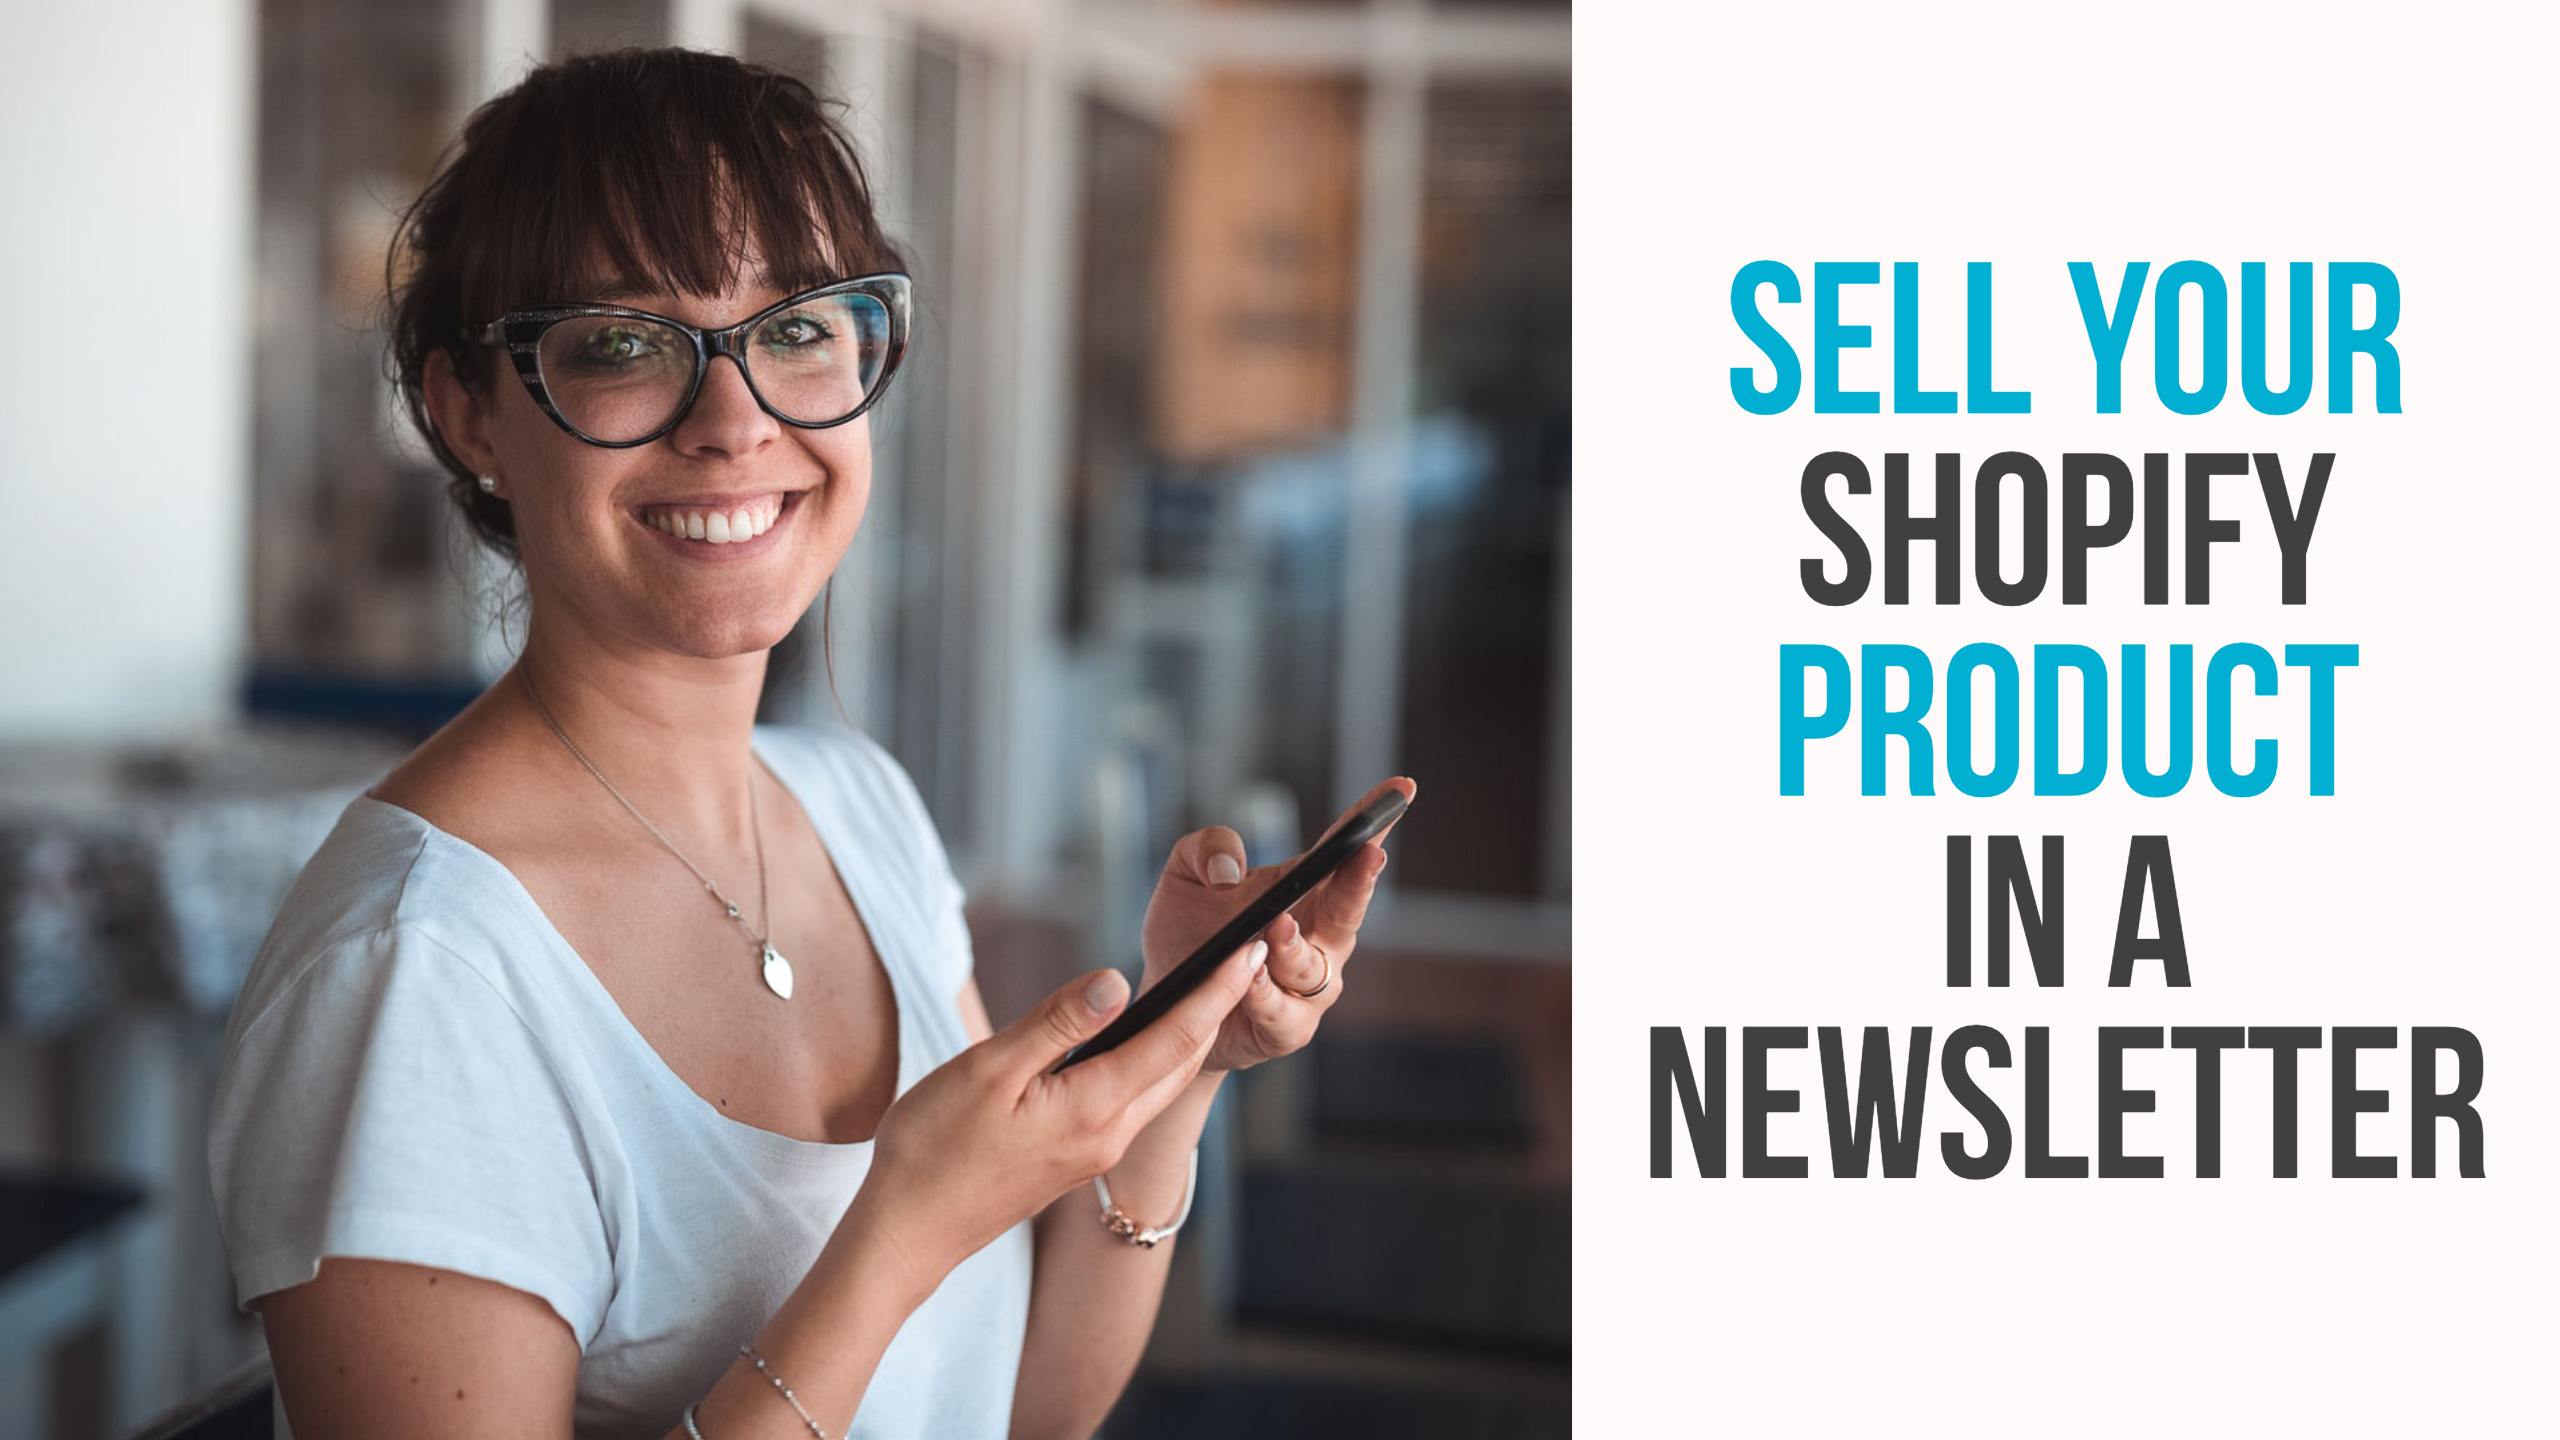 Sell your Shopify product in a newsletter